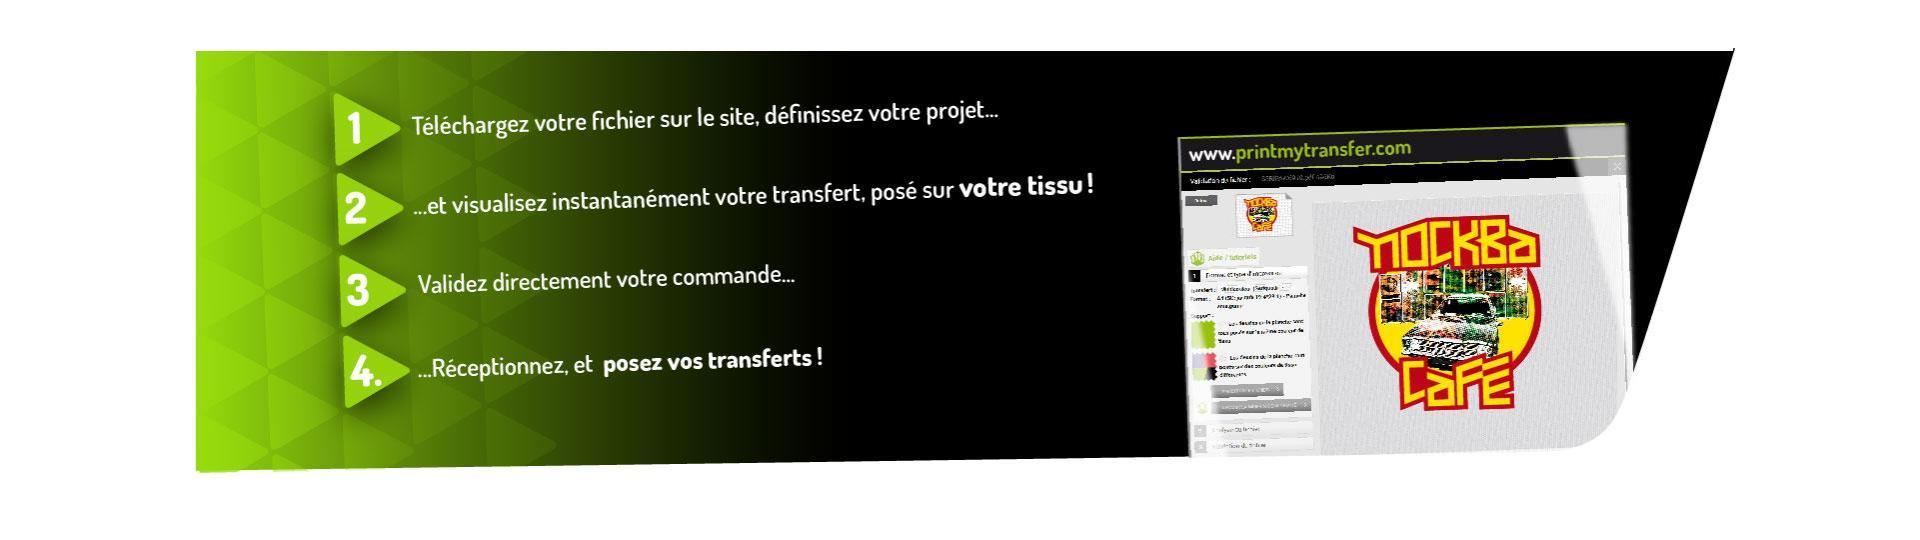 PROMOTIONALS - image 2